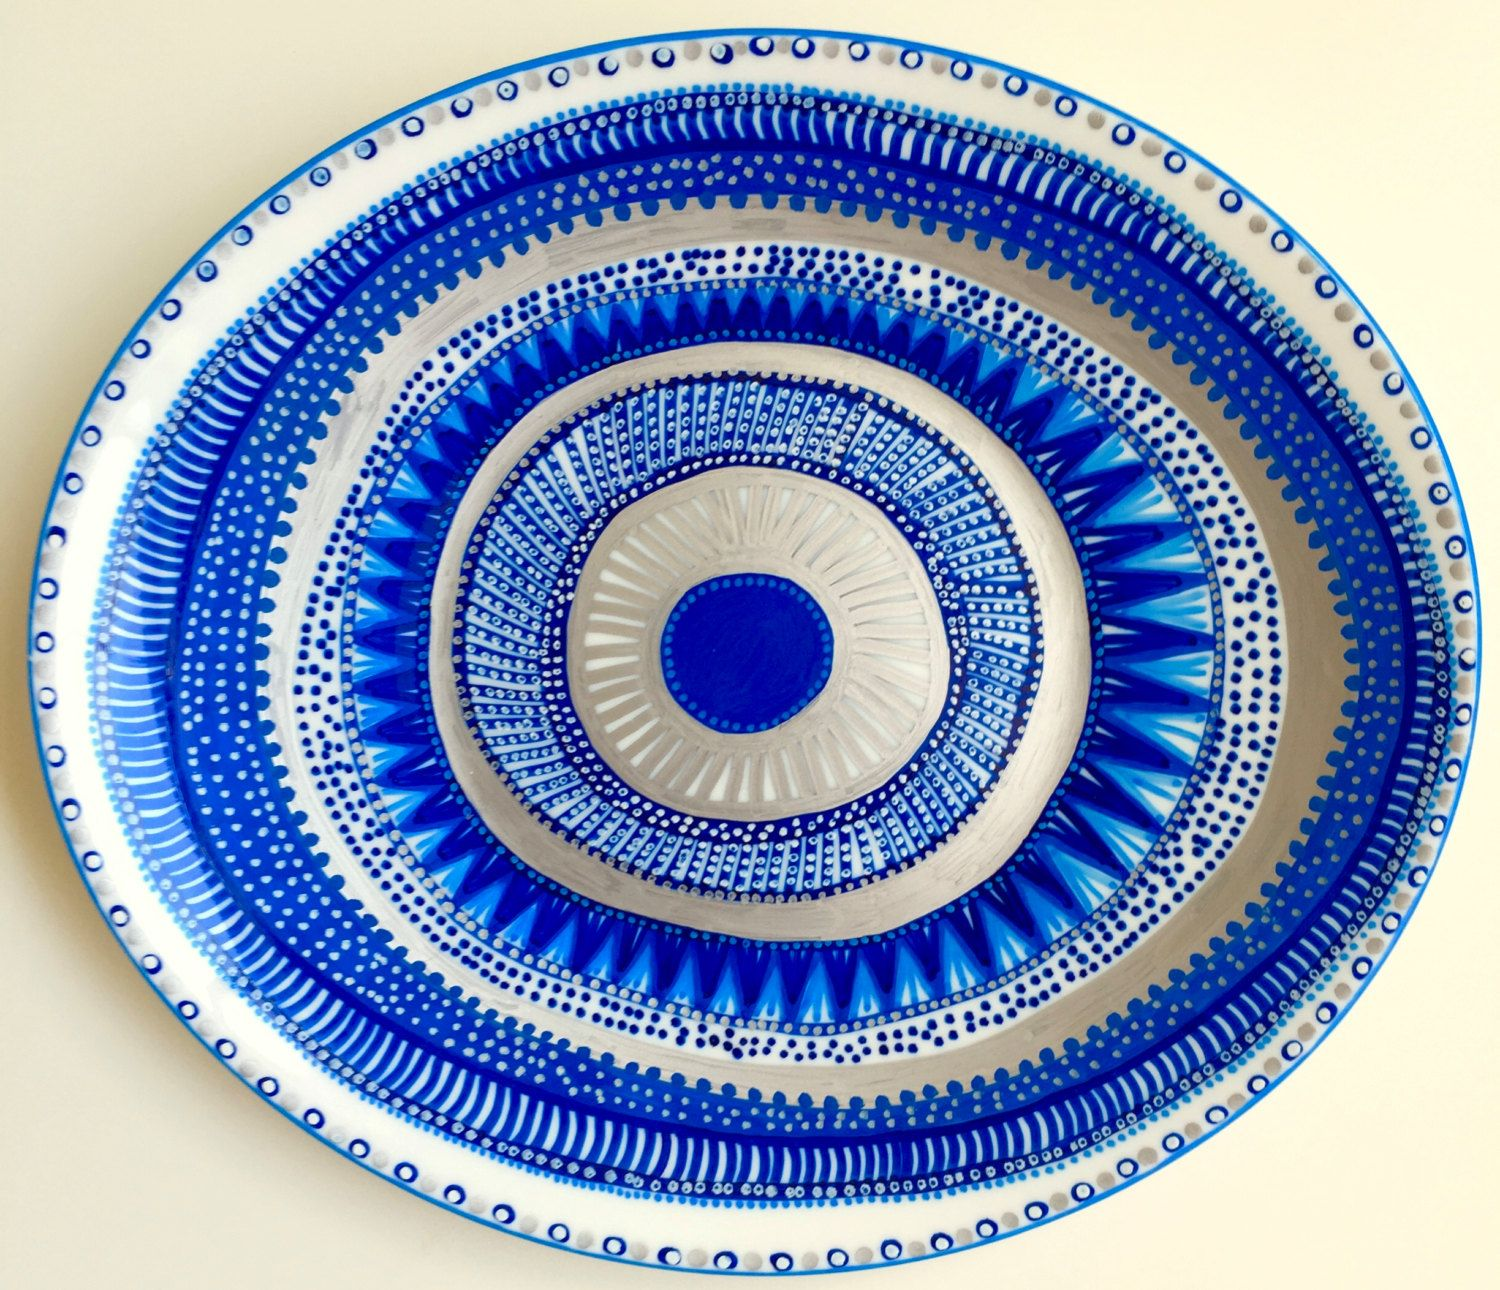 Evil eye decor decorative plate mandala decor blue decor evil eye decor decorative plate mandala decor blue decor blue wall art amipublicfo Gallery